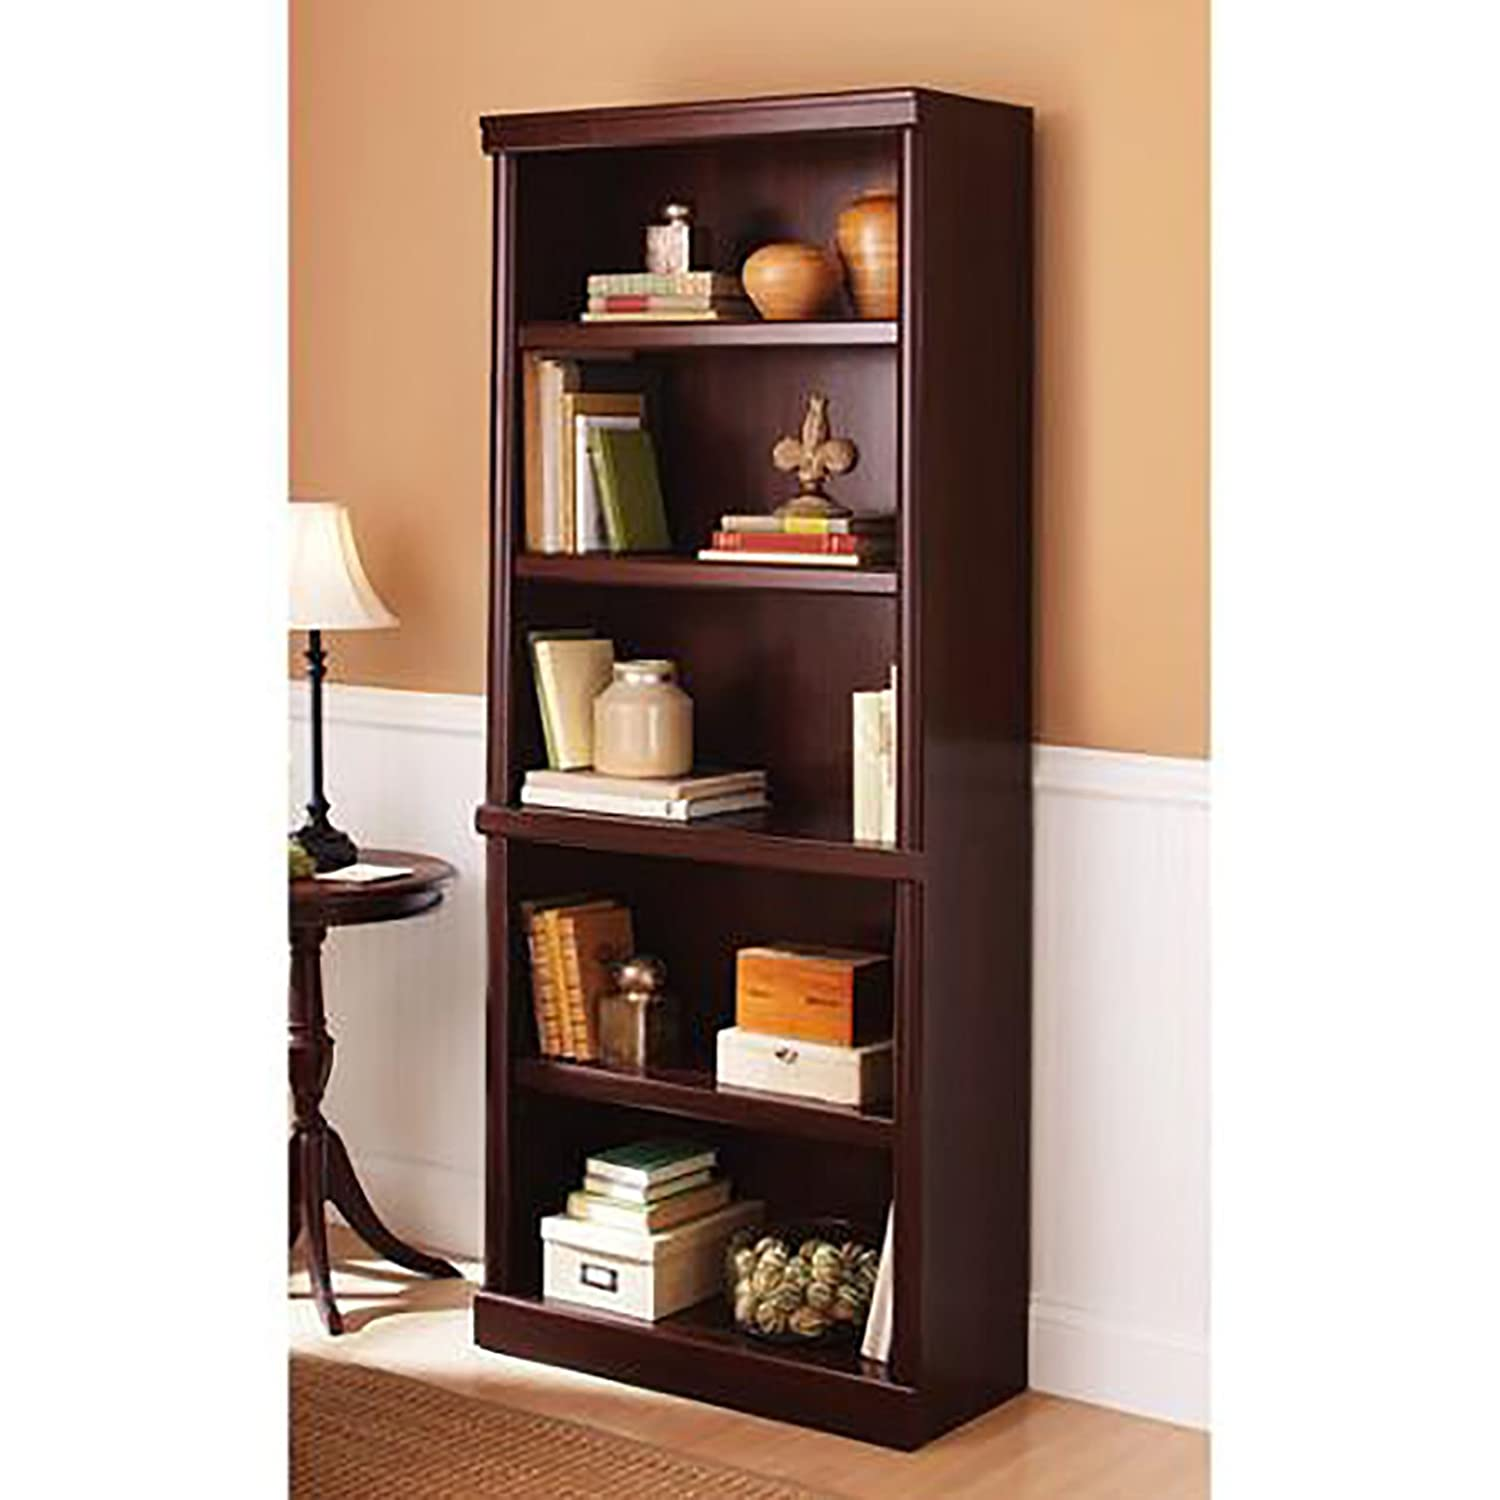 Design Display Bookshelf amazon com 5 shelf cherry bookcase wooden book case storage shelves wood bookshelf library kitchen dining